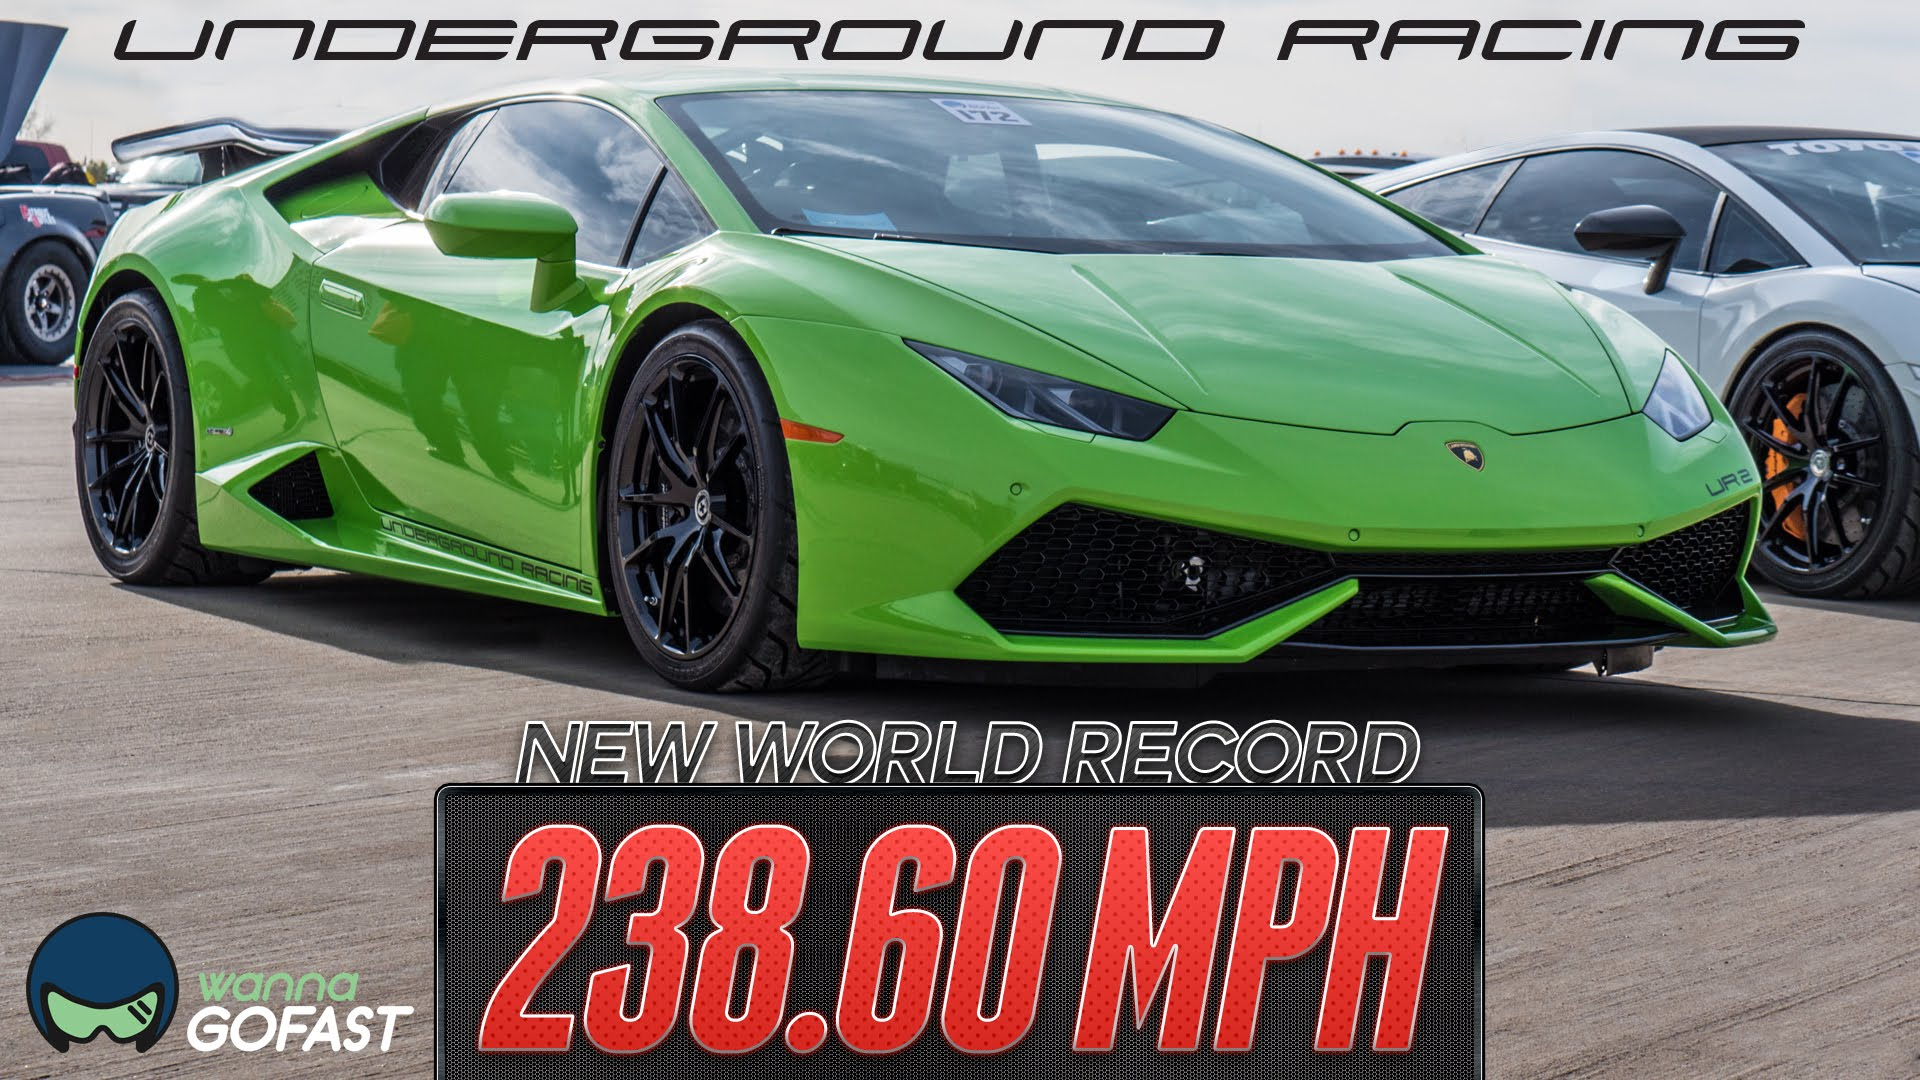 Underground Racing Sets Another World Record With Twin Turbo Lambo